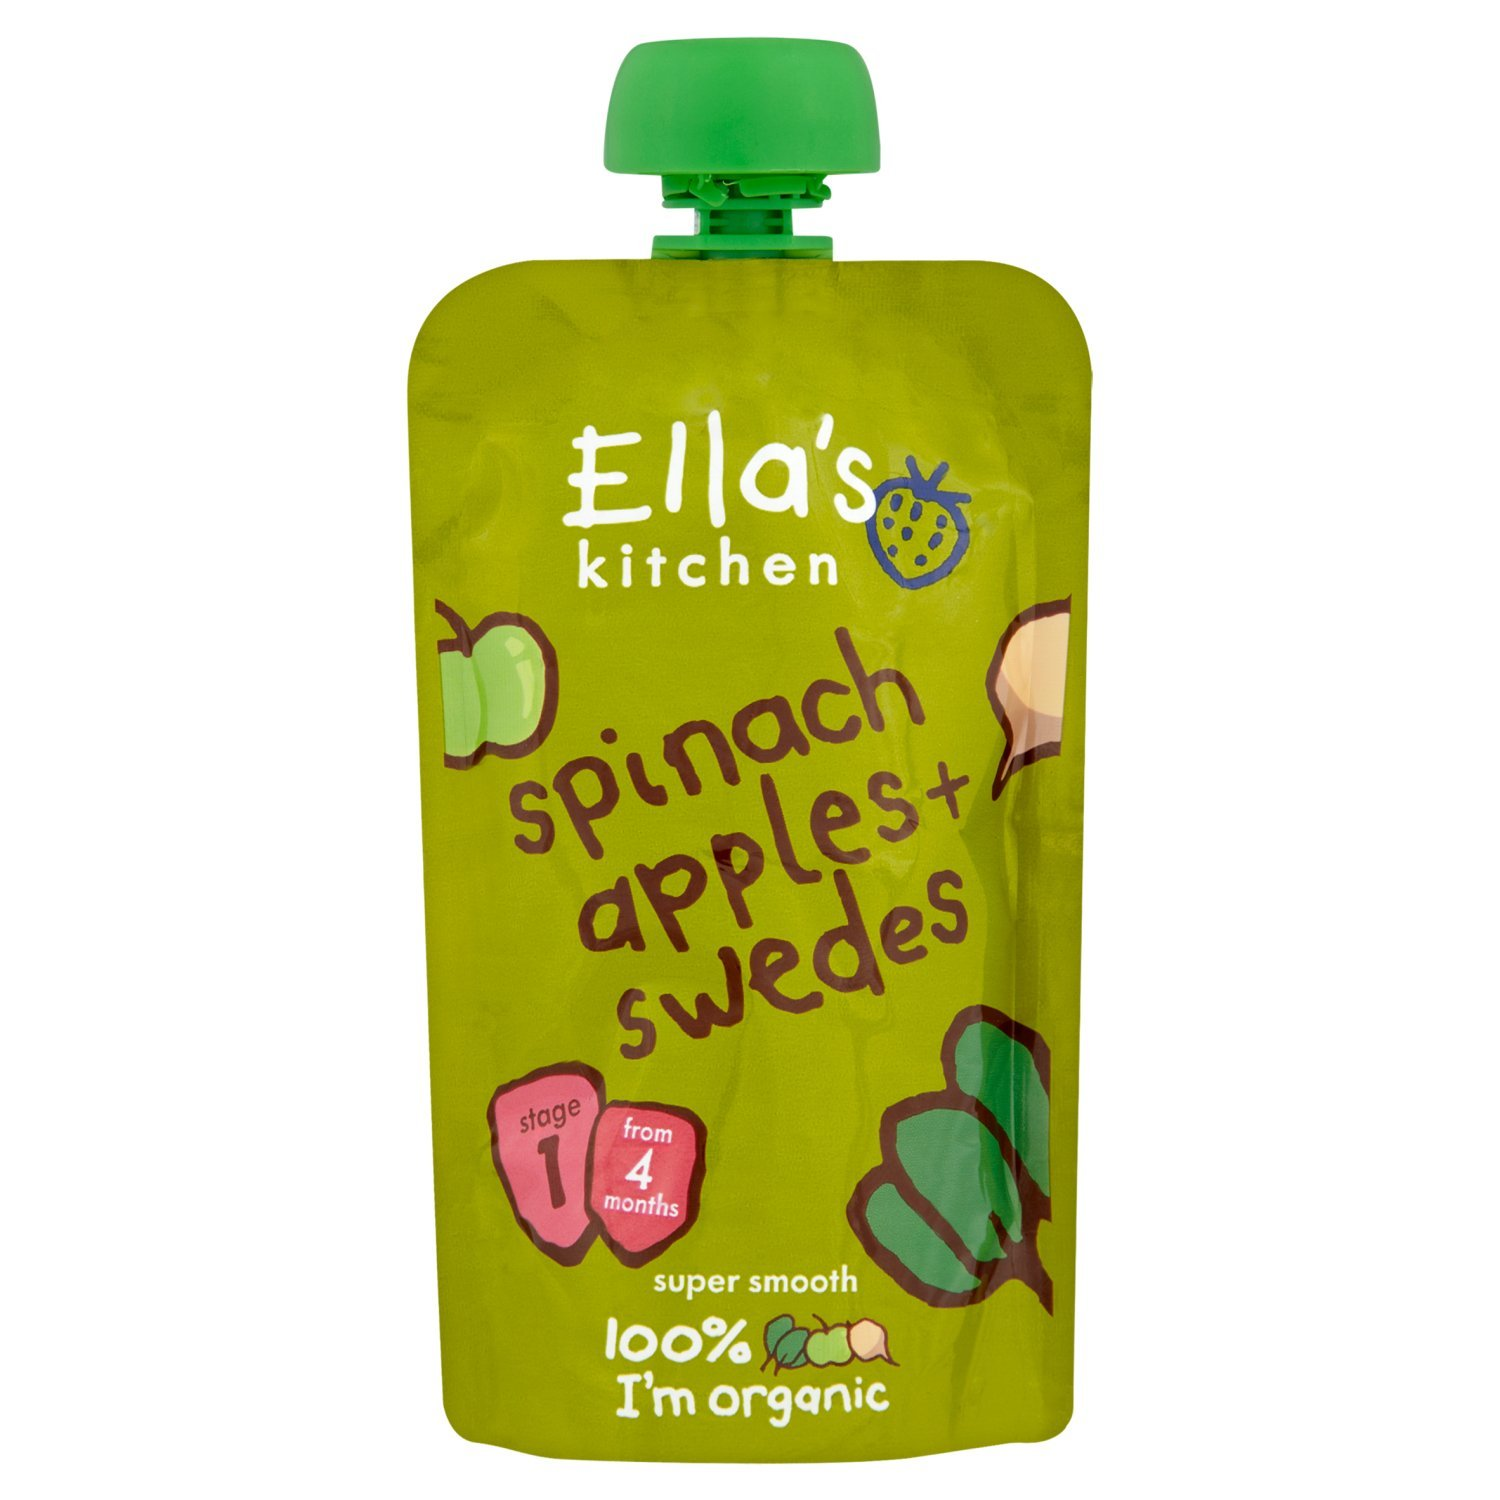 Ella's Kitchen - Stage 1 Baby Food - Spinach, Apples & Swedes - 120g (Case of 7)